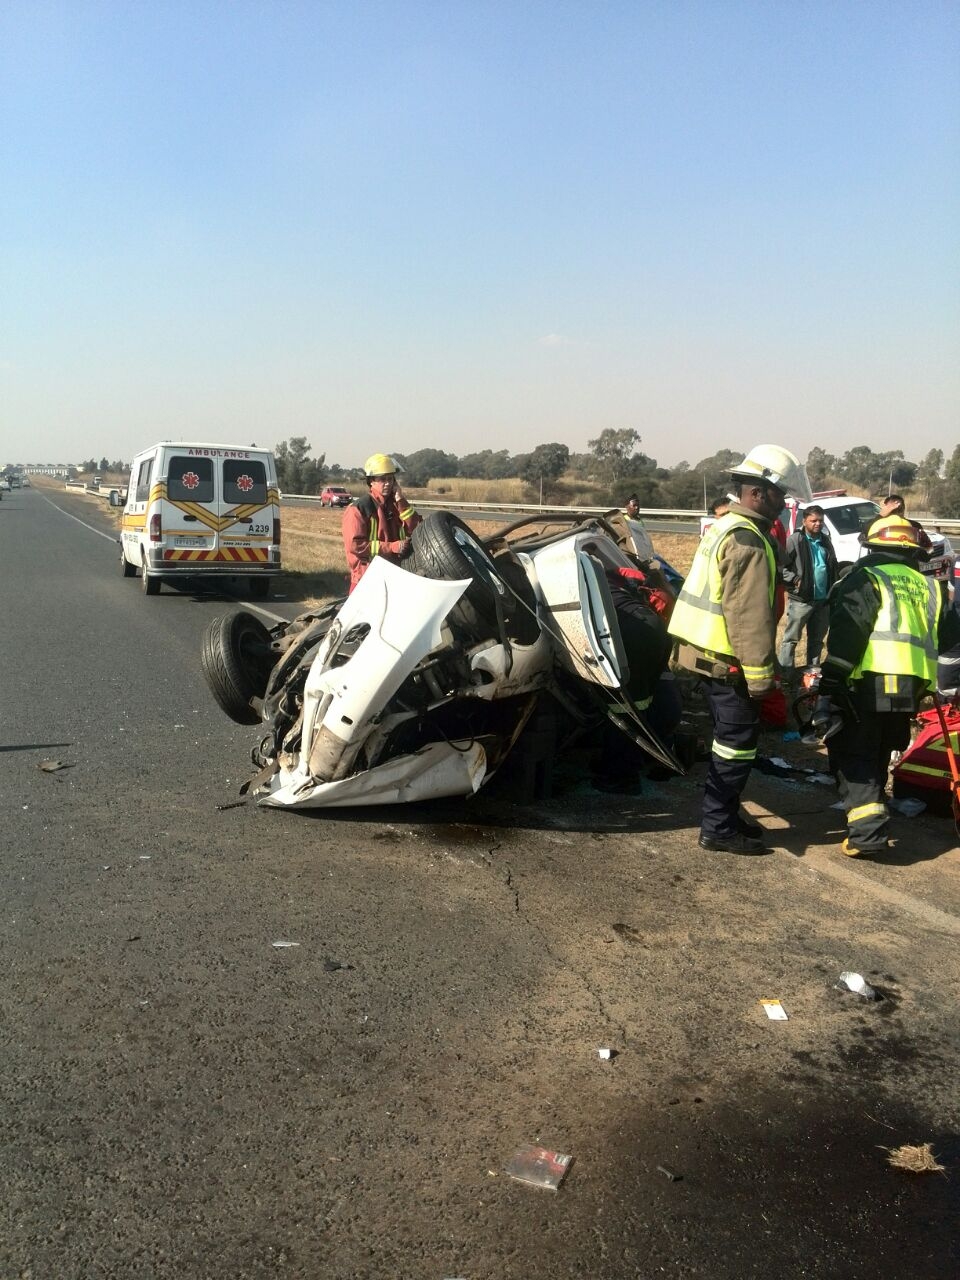 Vereenging R59 crash leaves woman critically injured